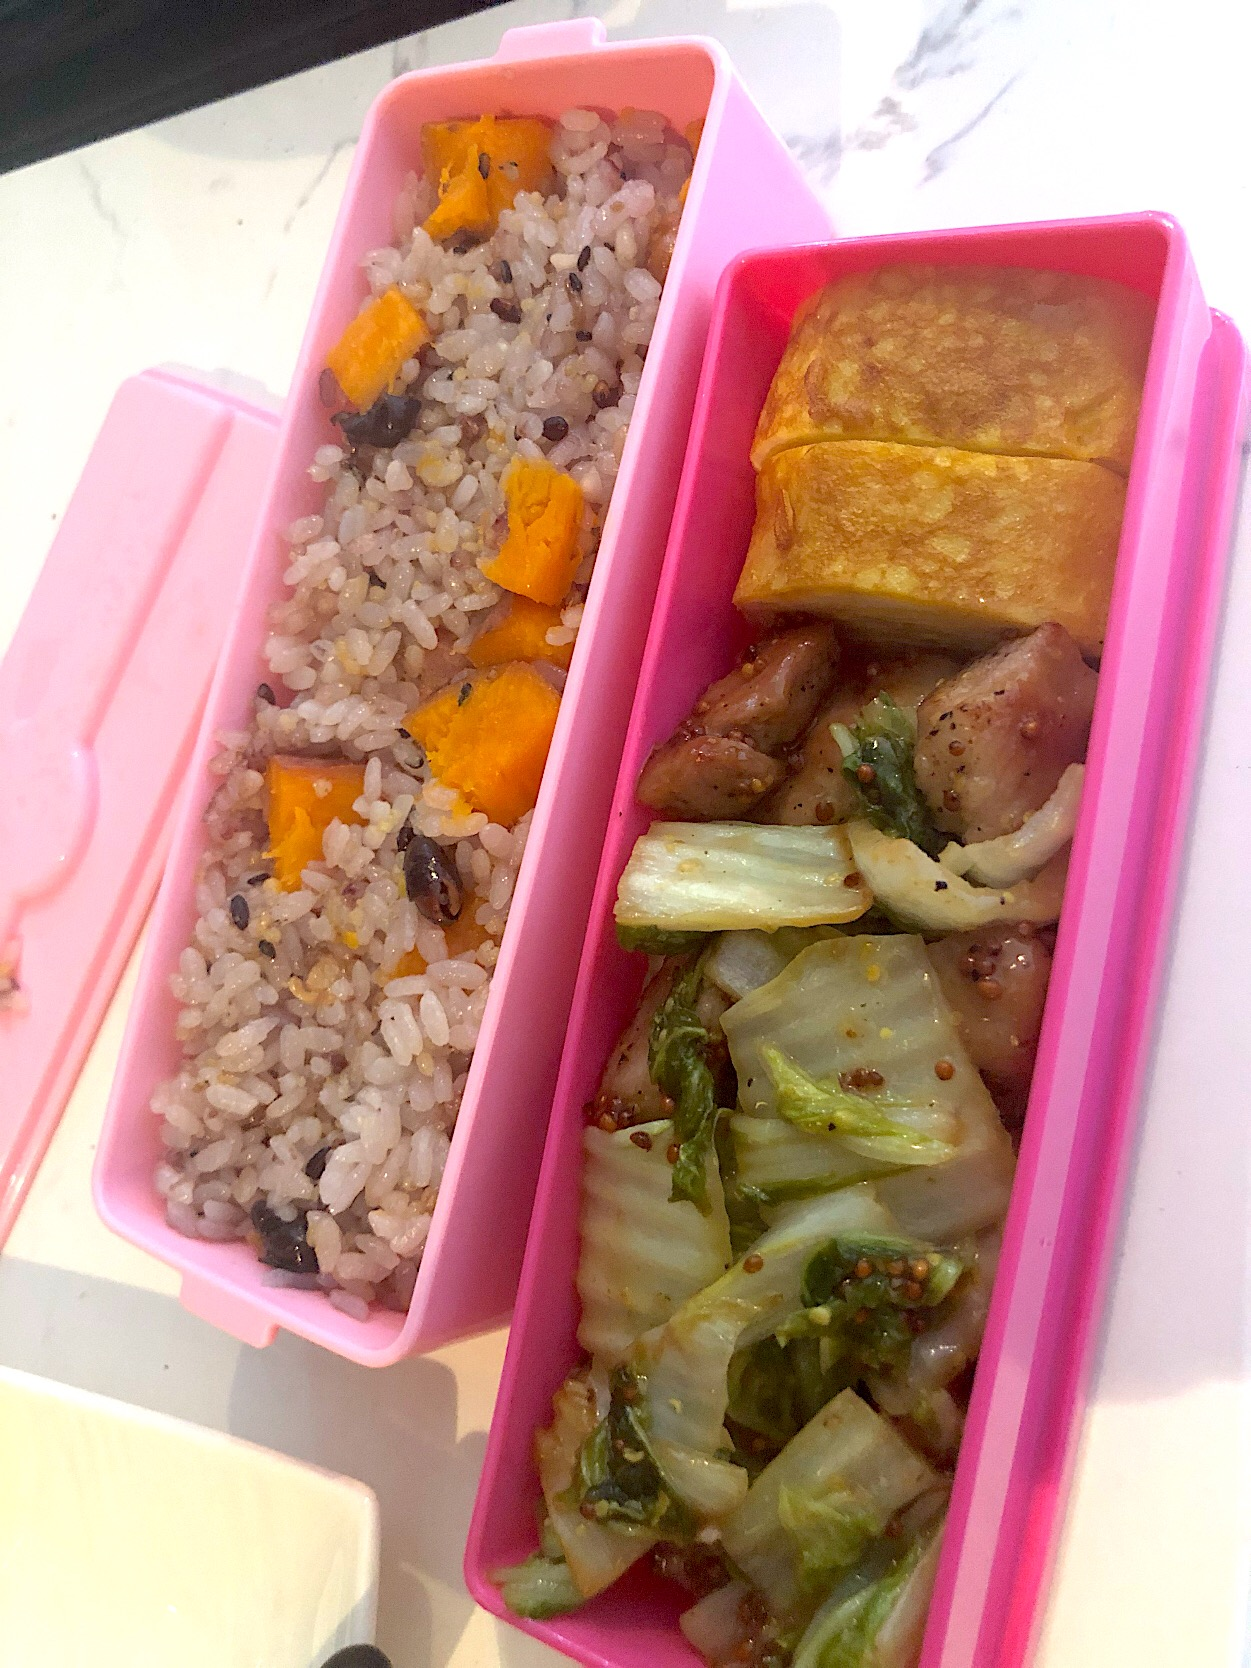 Today's lunchbox